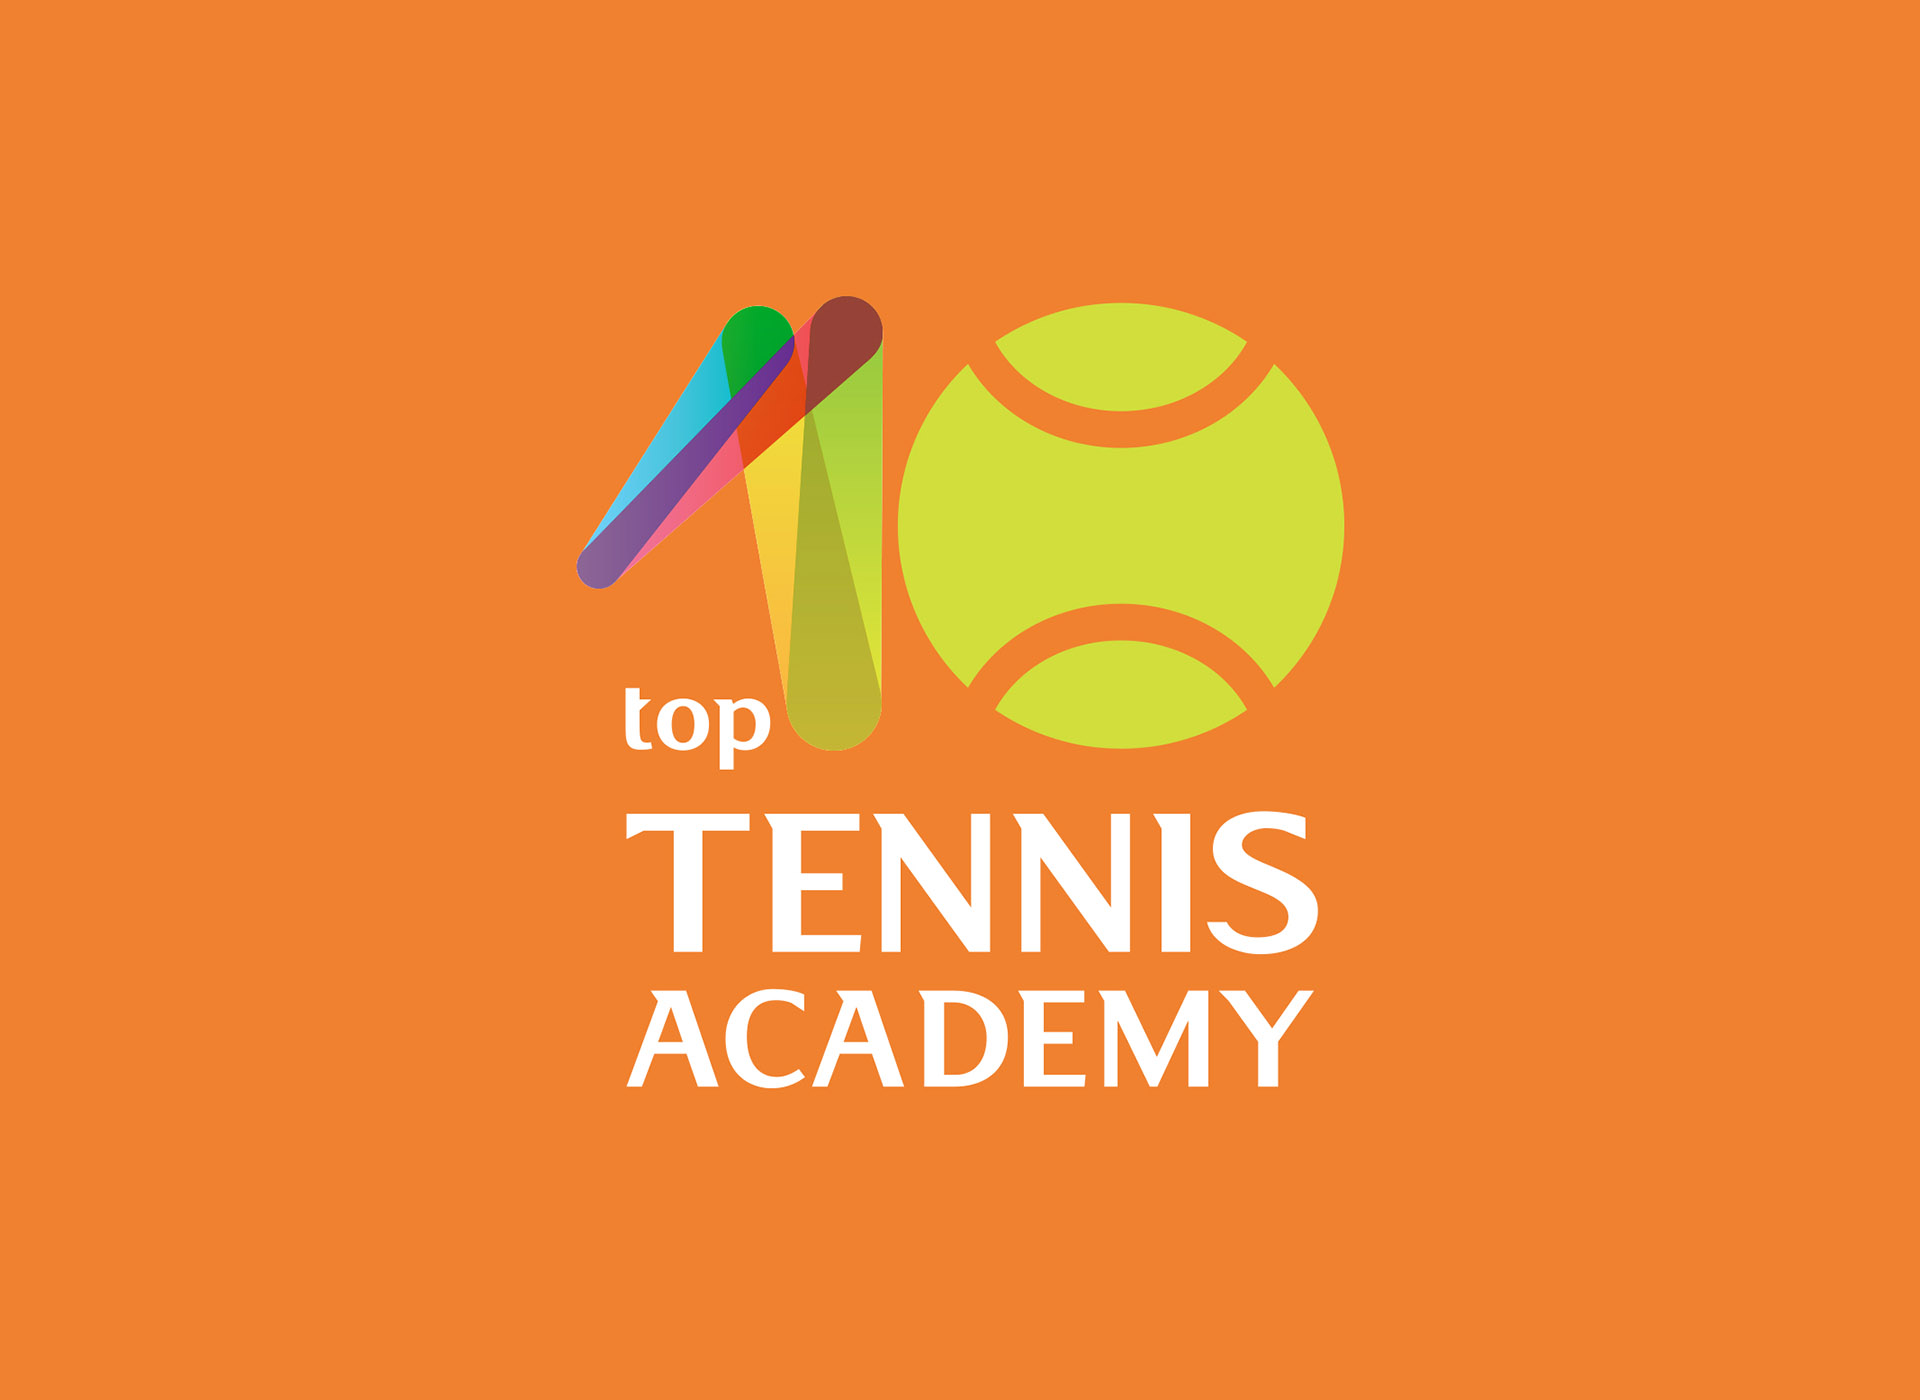 Top 10 Tennis Academy